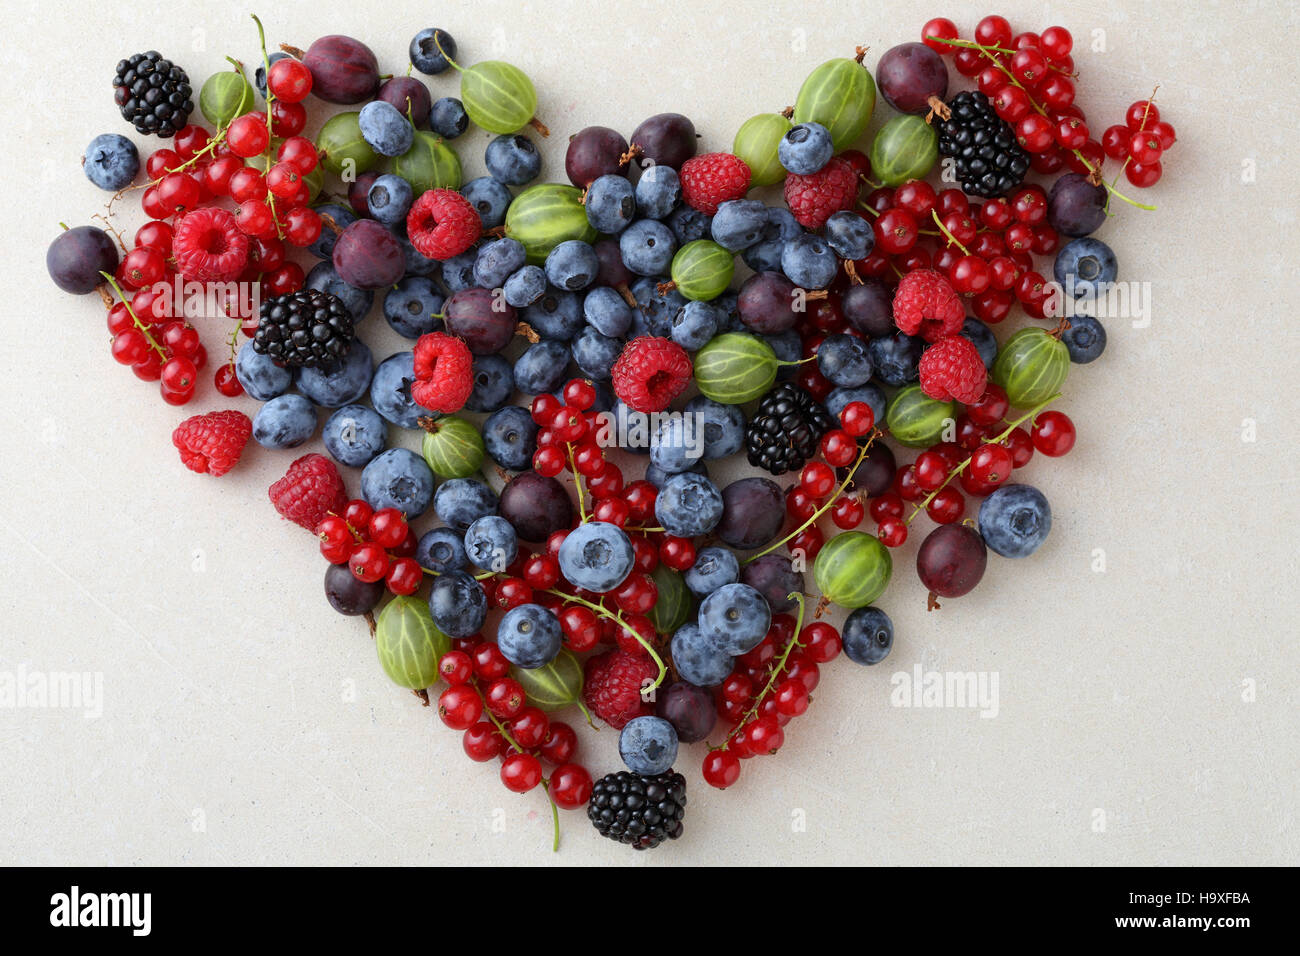 Fresh berries healthy lifestyle concept, love fruits - Stock Image